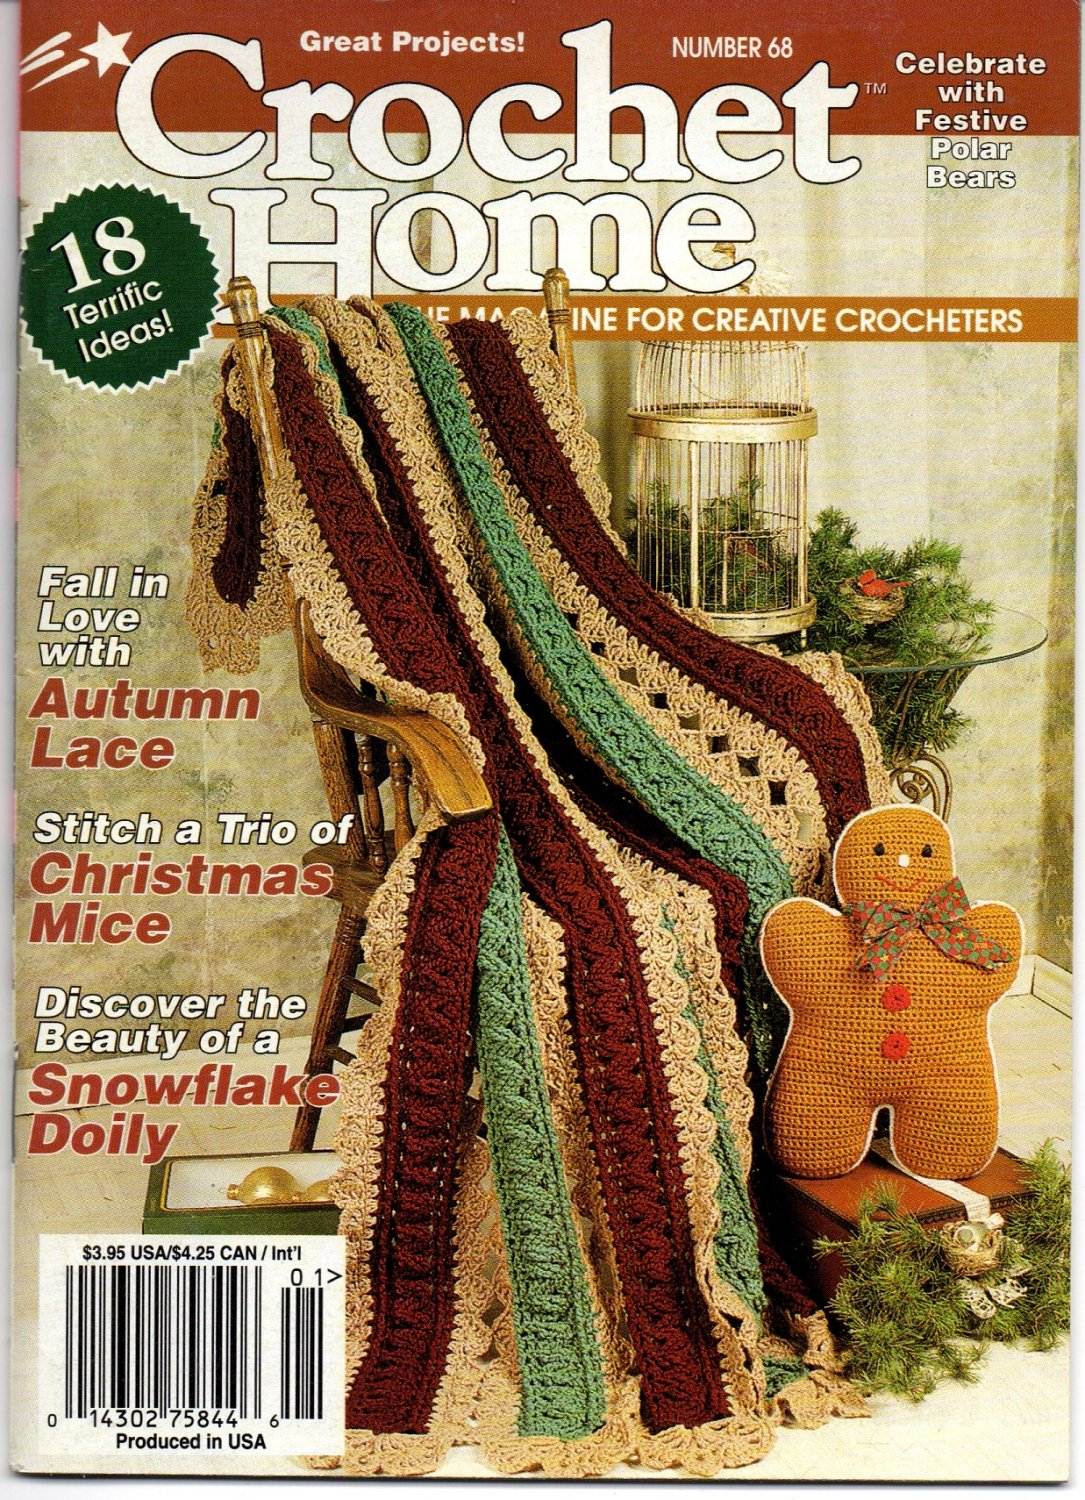 Crochet Home Dec Jan 1999 Number 68 Magazine